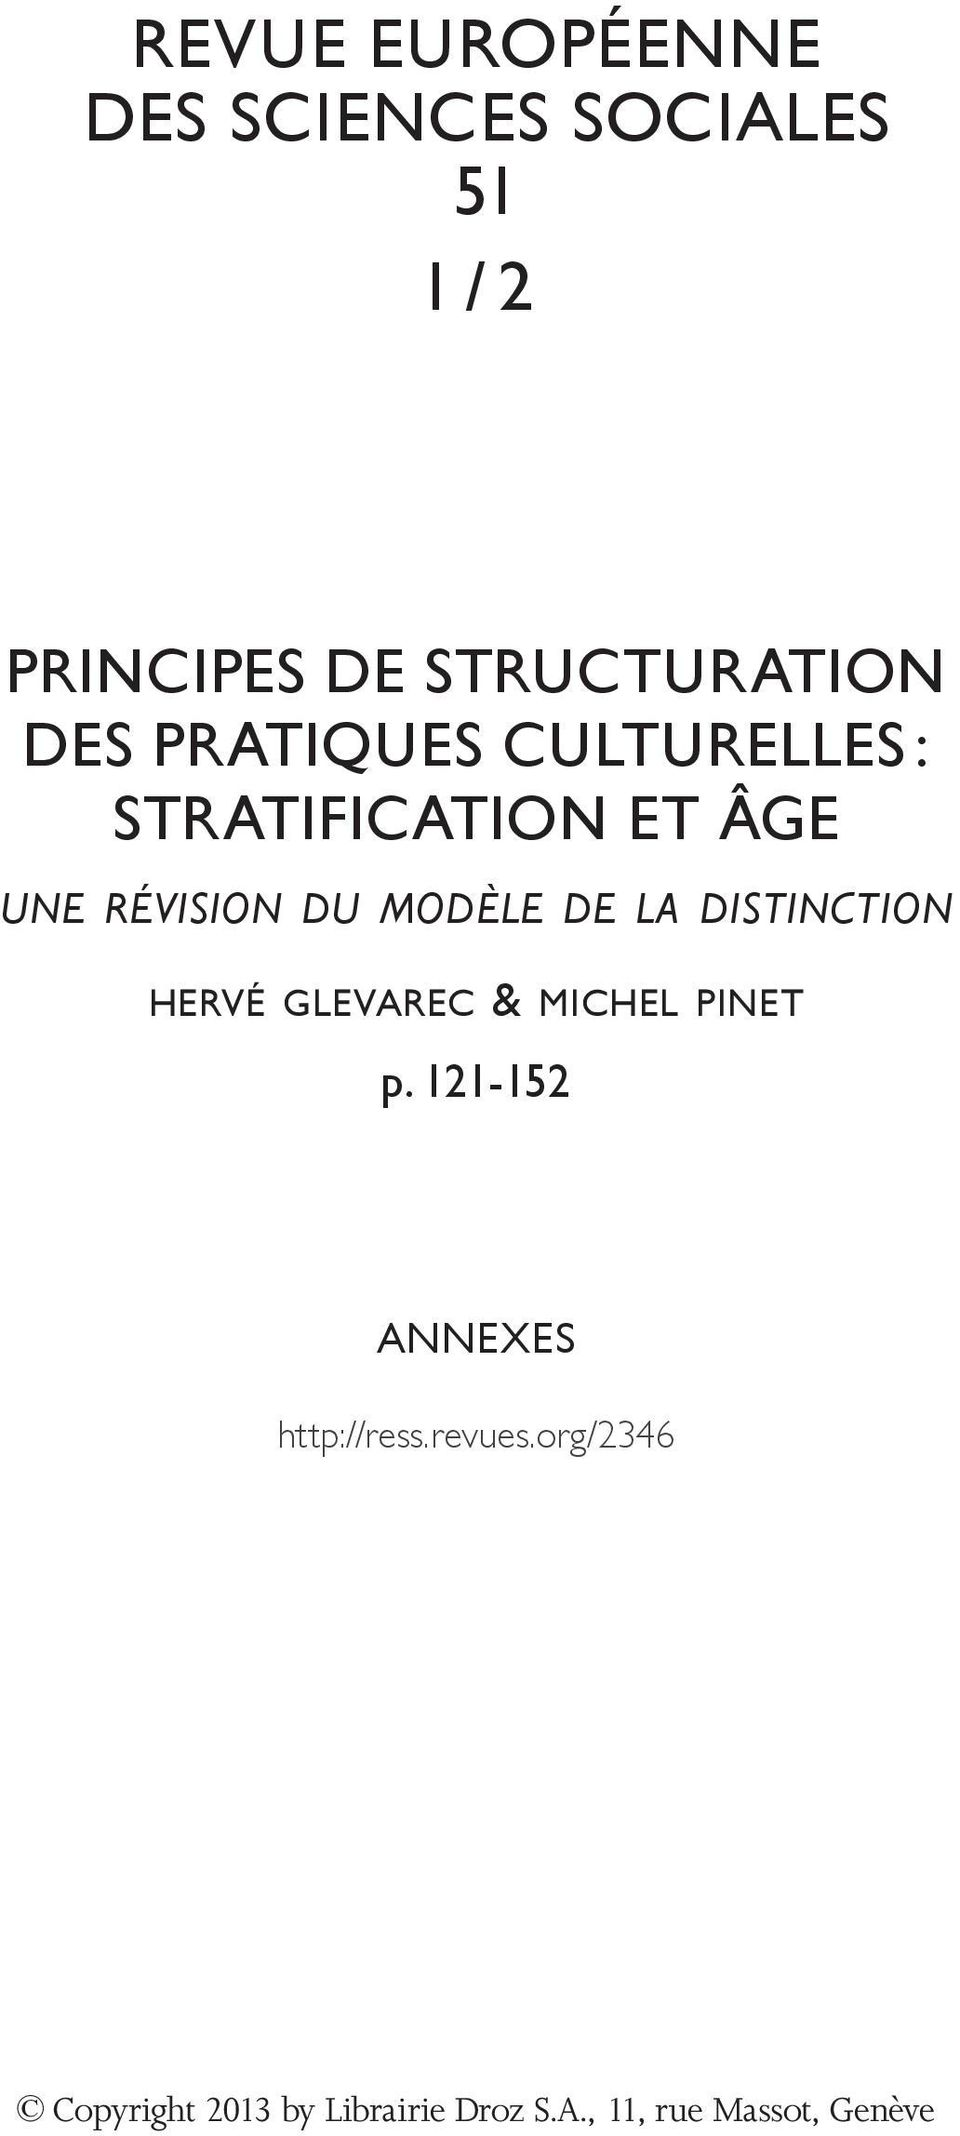 de la distinction hervé glevarec & michel pinet p.